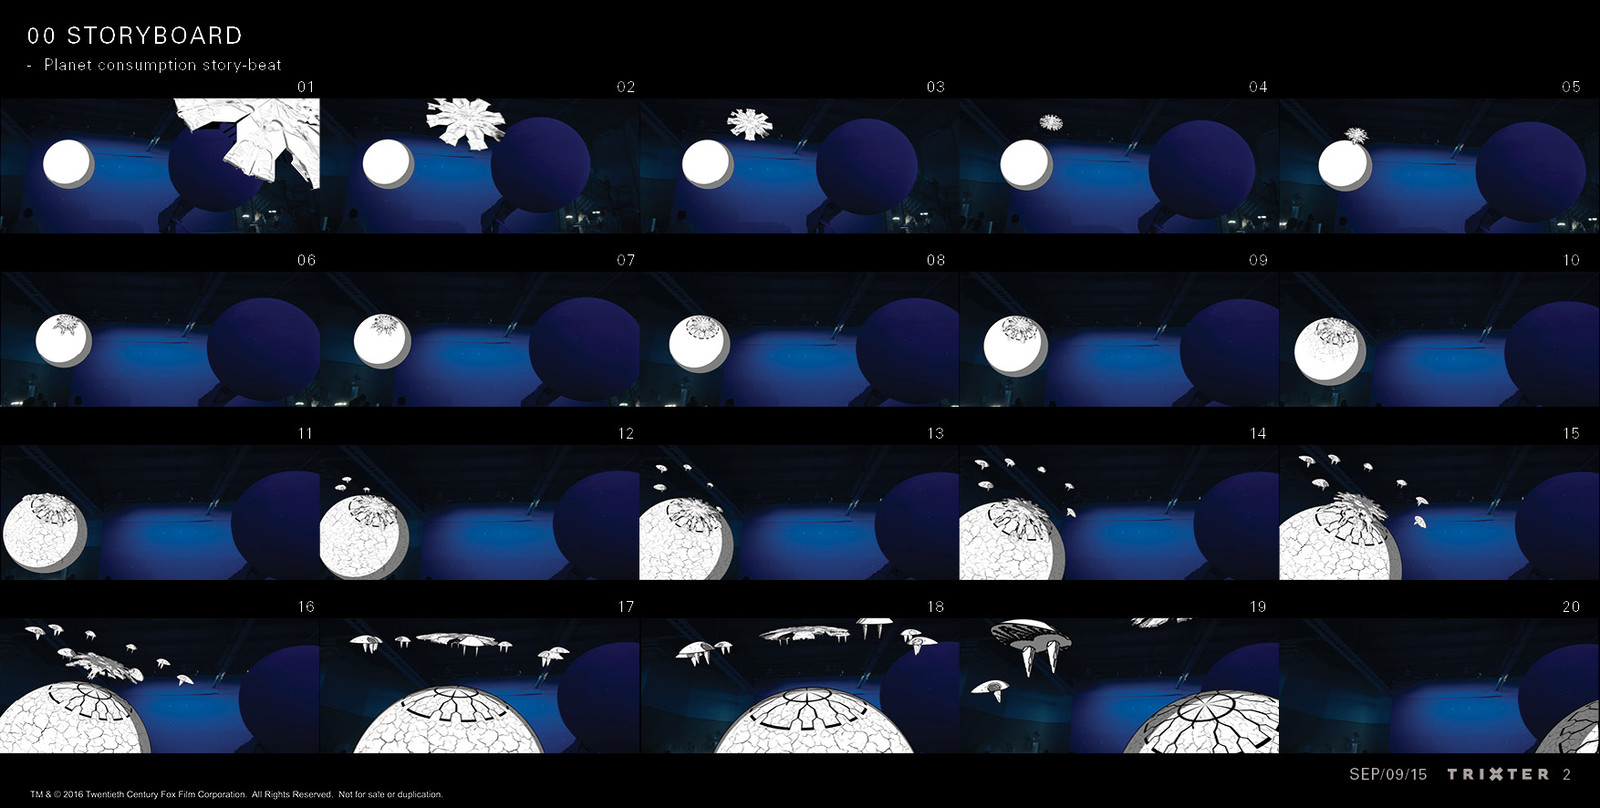 Storyboard for the AI narration in a way less abstract style. Here the story told is the destruction of the AI planet  by the evil aliens' mothership.